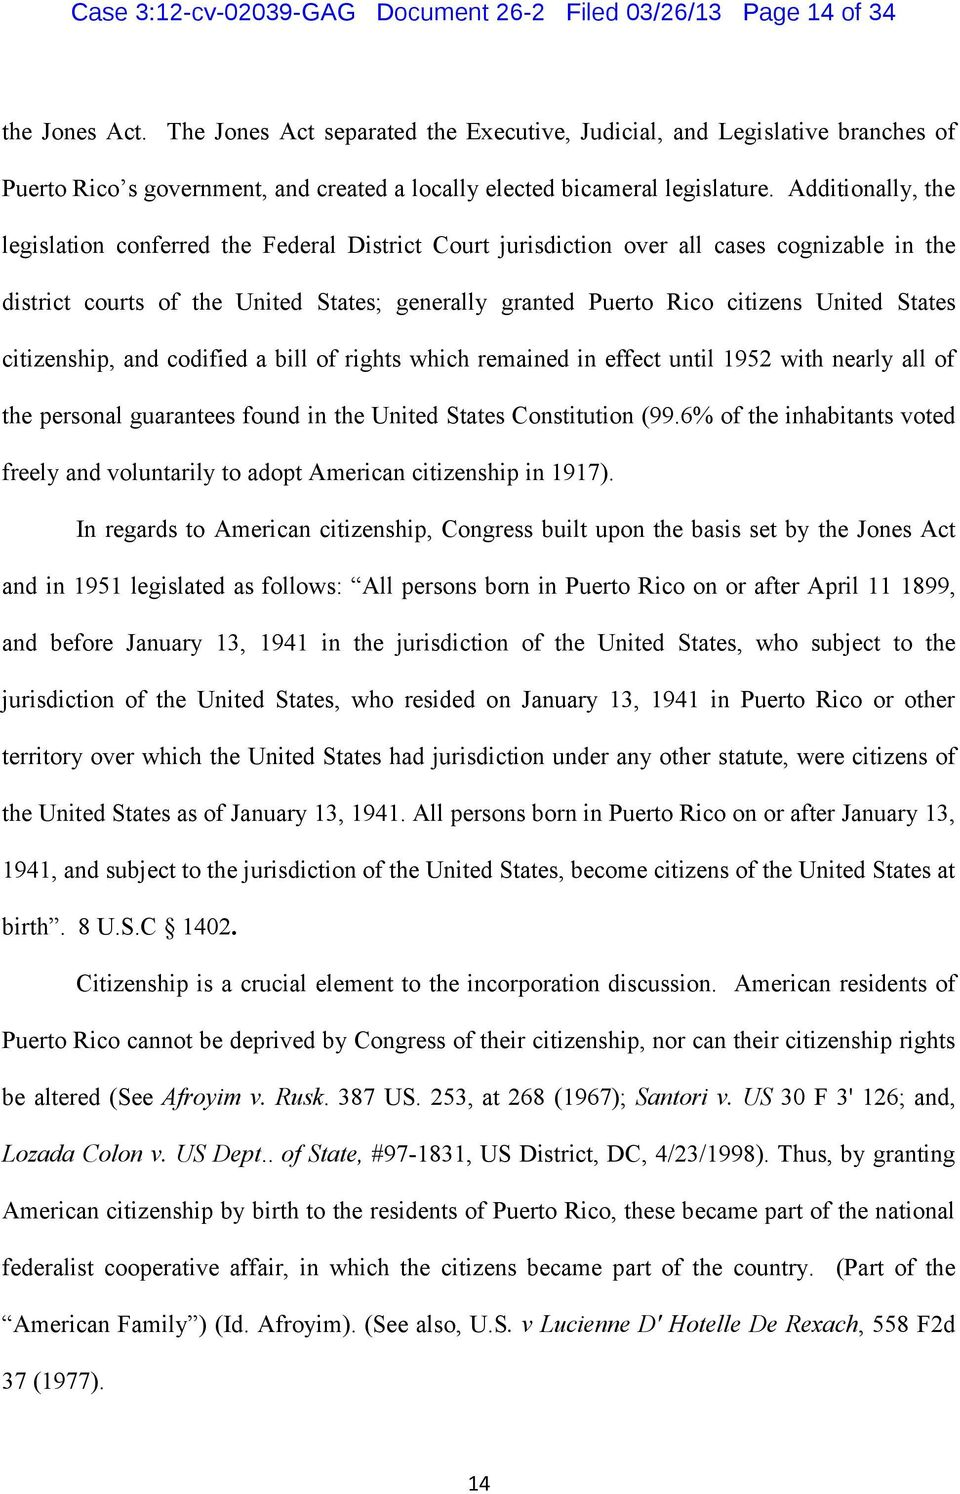 Additionally, the legislation conferred the Federal District Court jurisdiction over all cases cognizable in the district courts of the United States; generally granted Puerto Rico citizens United